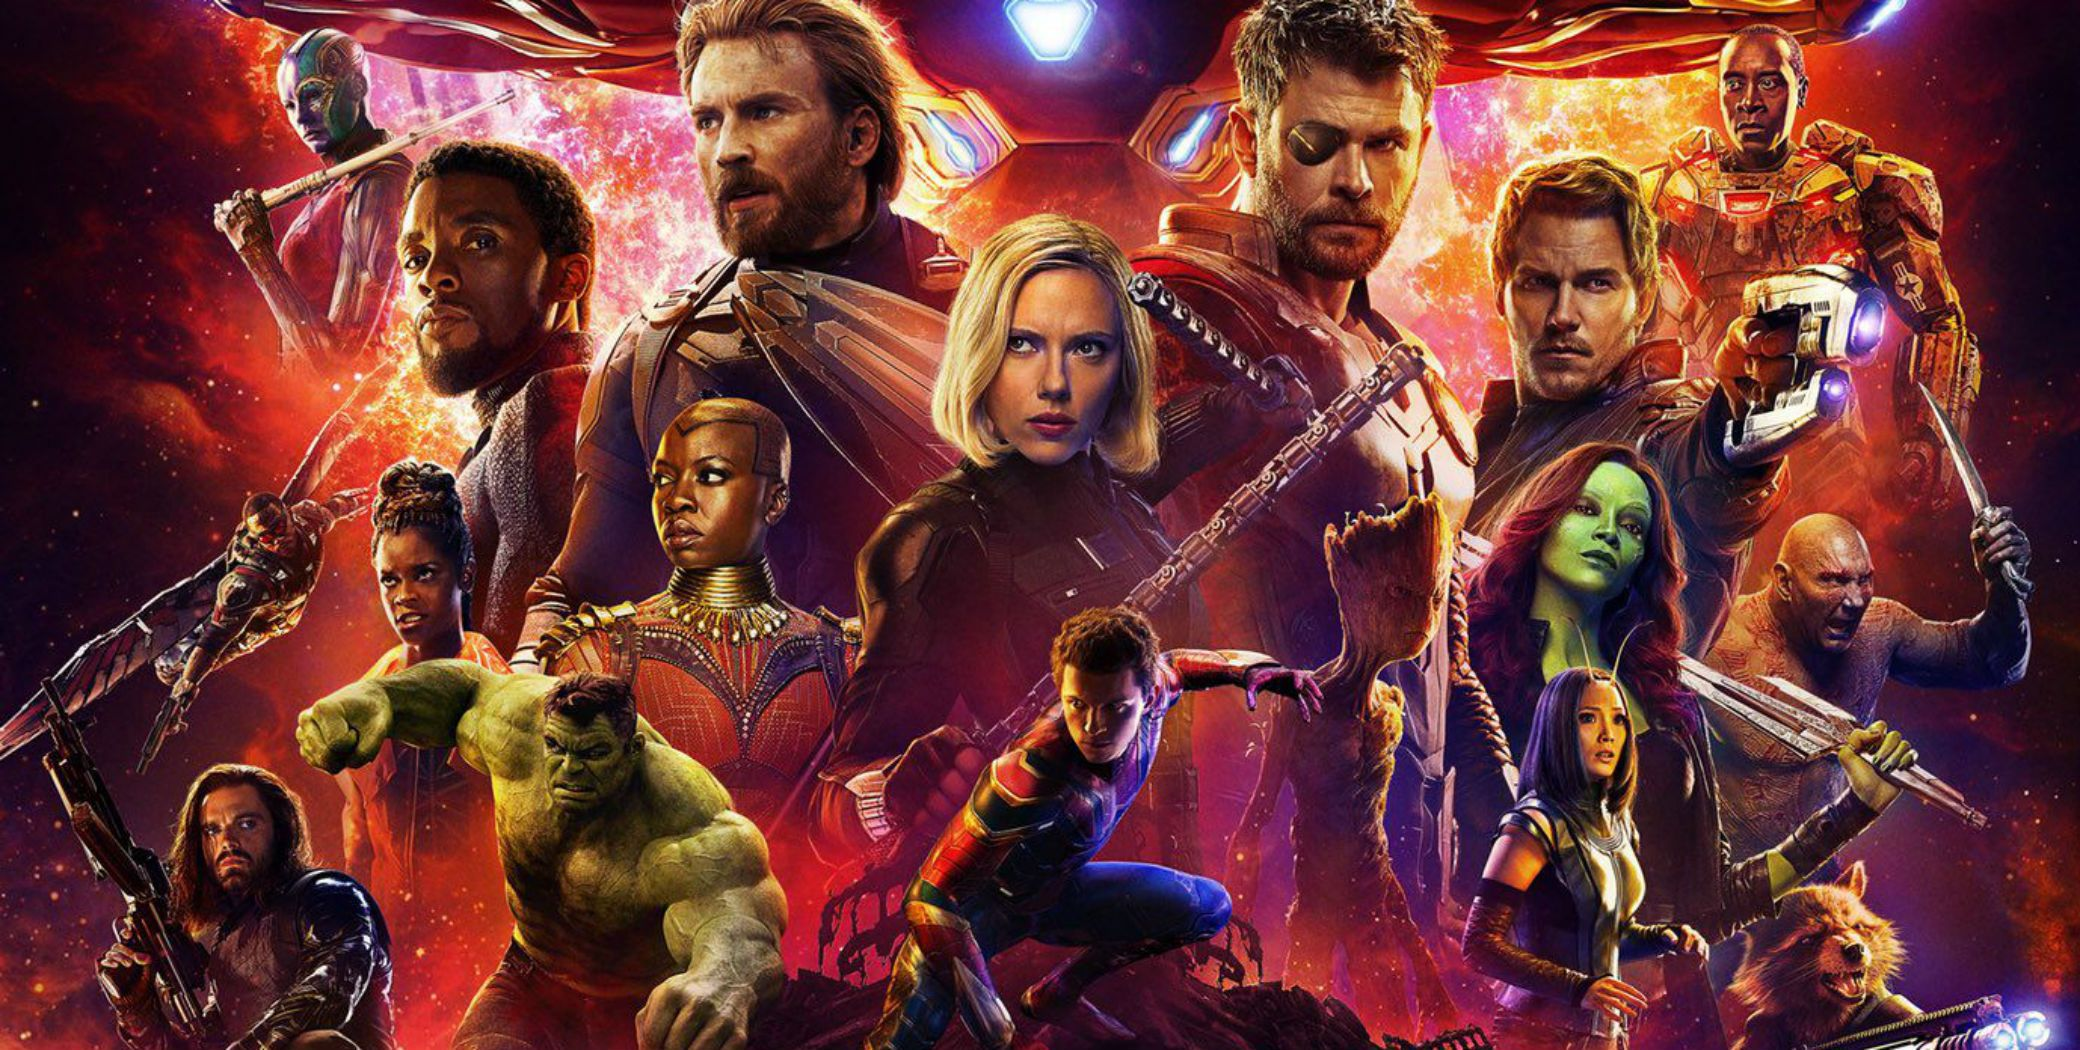 Avengers Infinity War and Endgame Poster